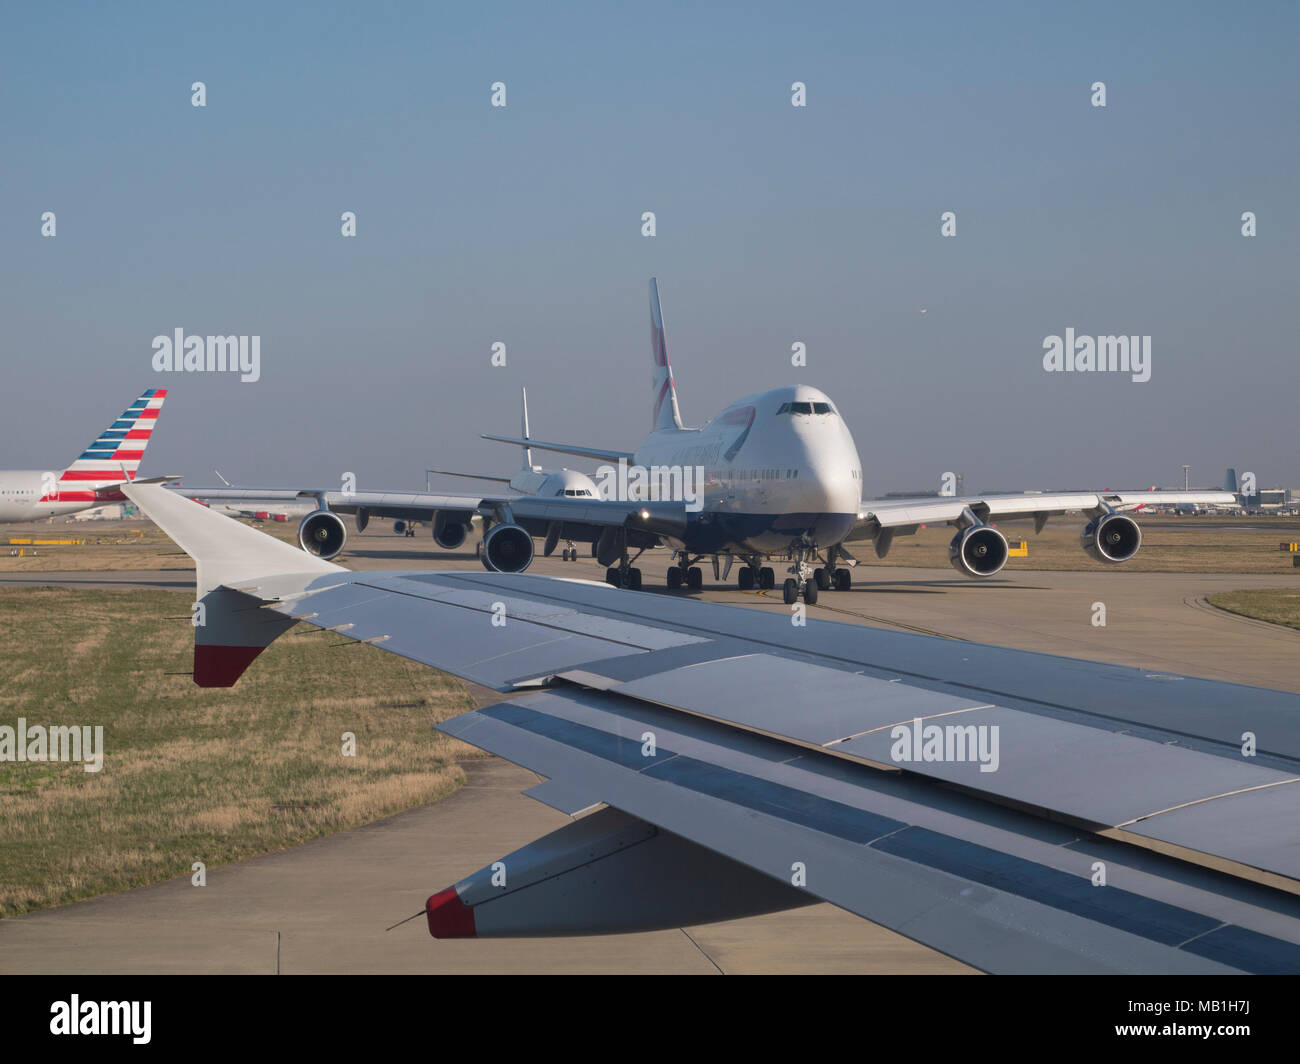 Aircraft on taxiway, London Heathrow - Stock Image